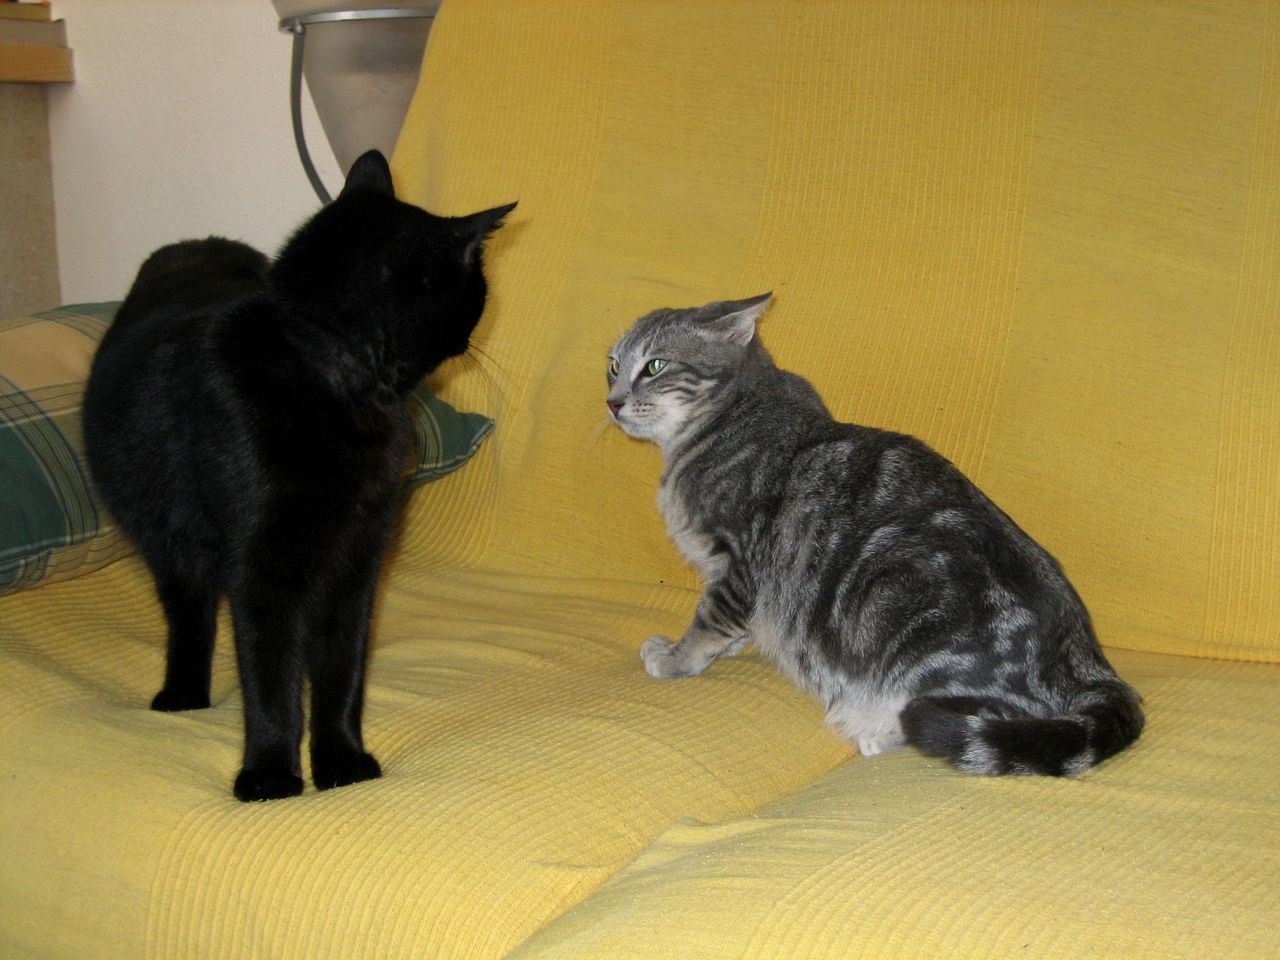 domestic cat, pets, feline, domestic animals, animal themes, two animals, cat, mammal, no people, black color, indoors, sitting, yellow, togetherness, day